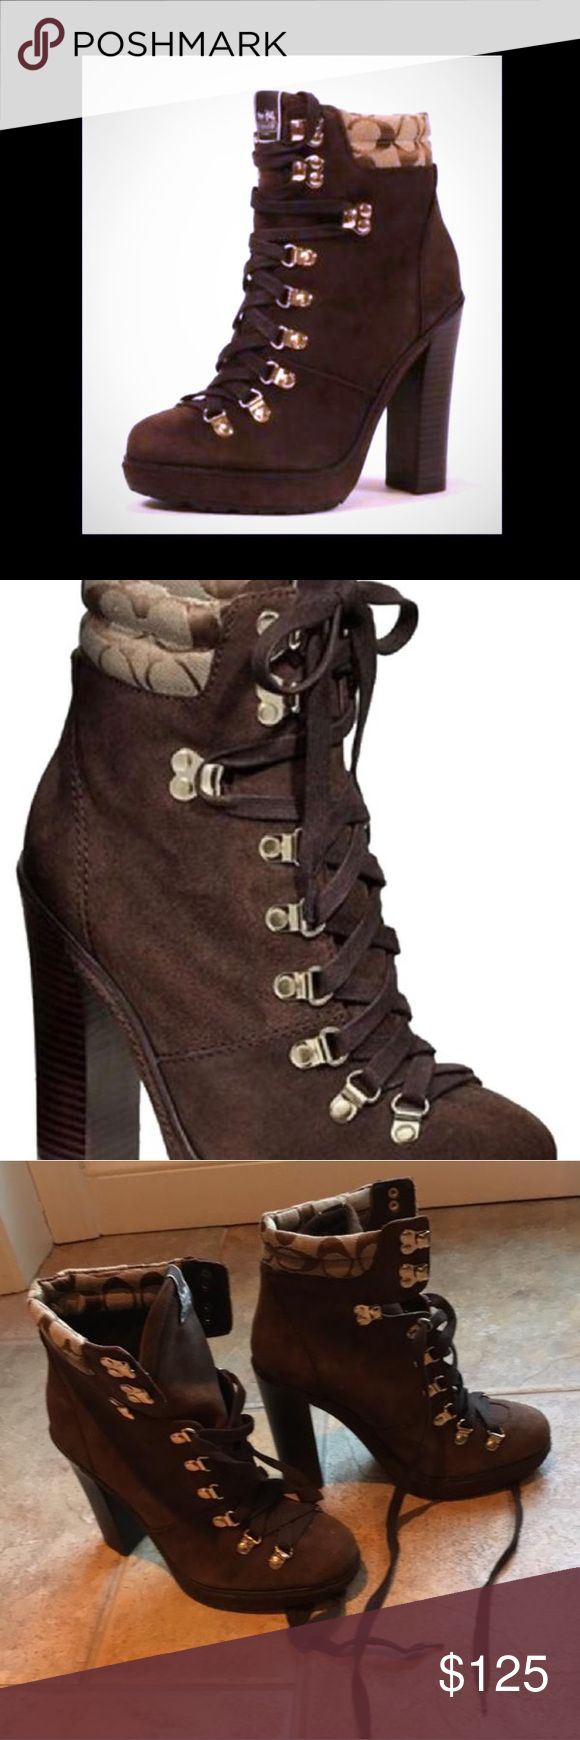 Coach platform ankle boots logo Brand new chocolate brown suede ankle boots with rubber lug sole Coach Shoes Ankle Boots & Booties